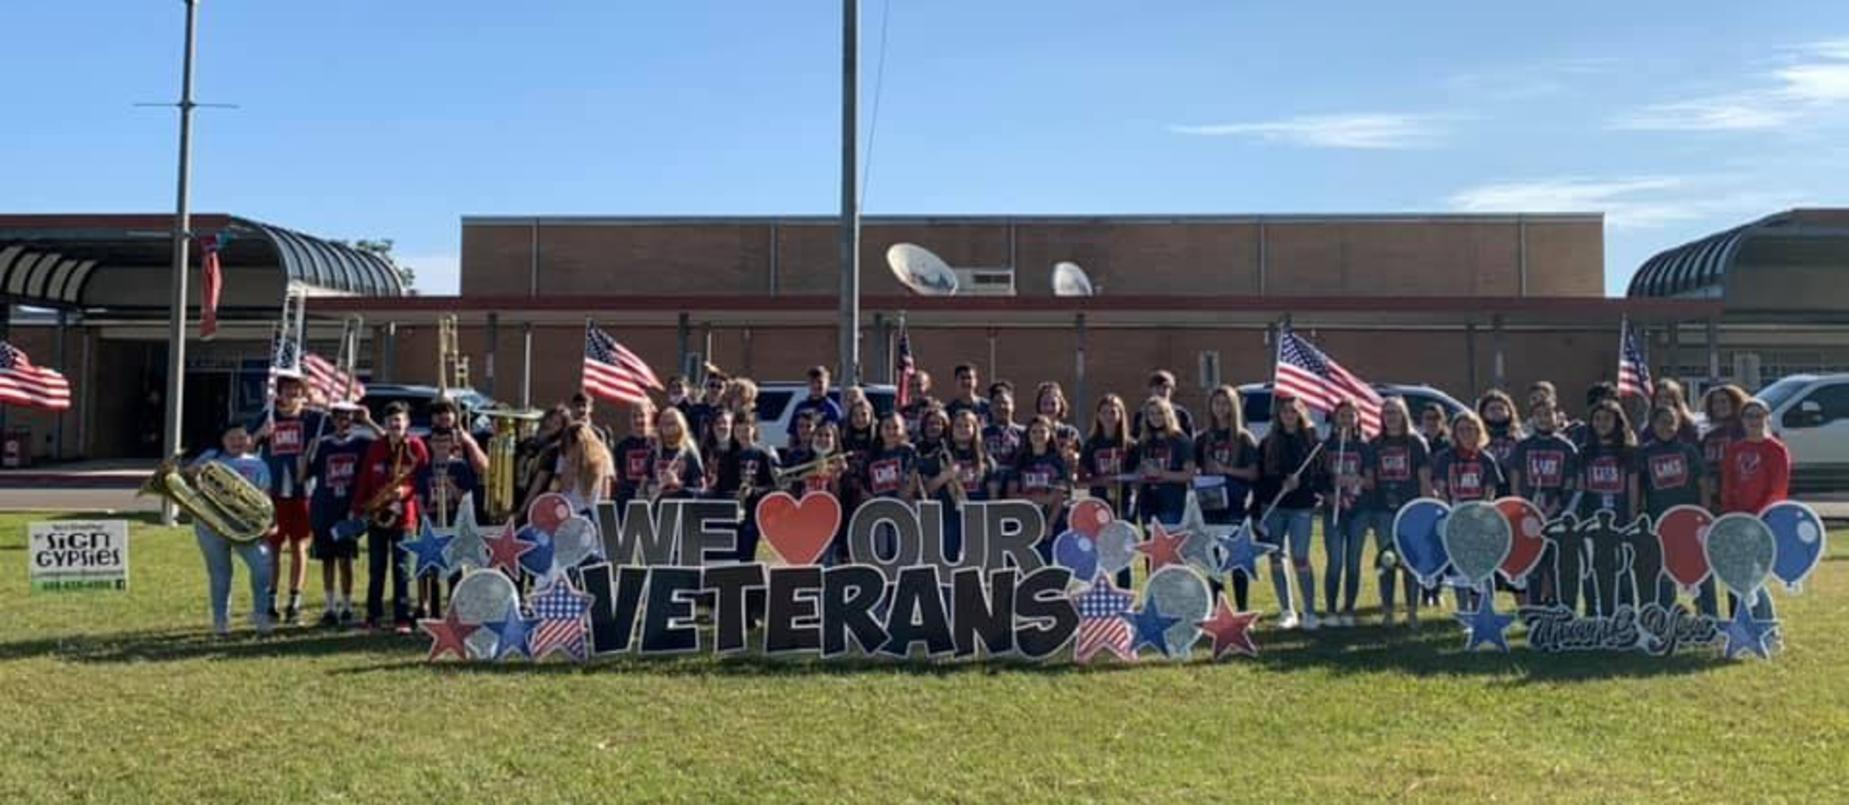 Veterans' day at LMS